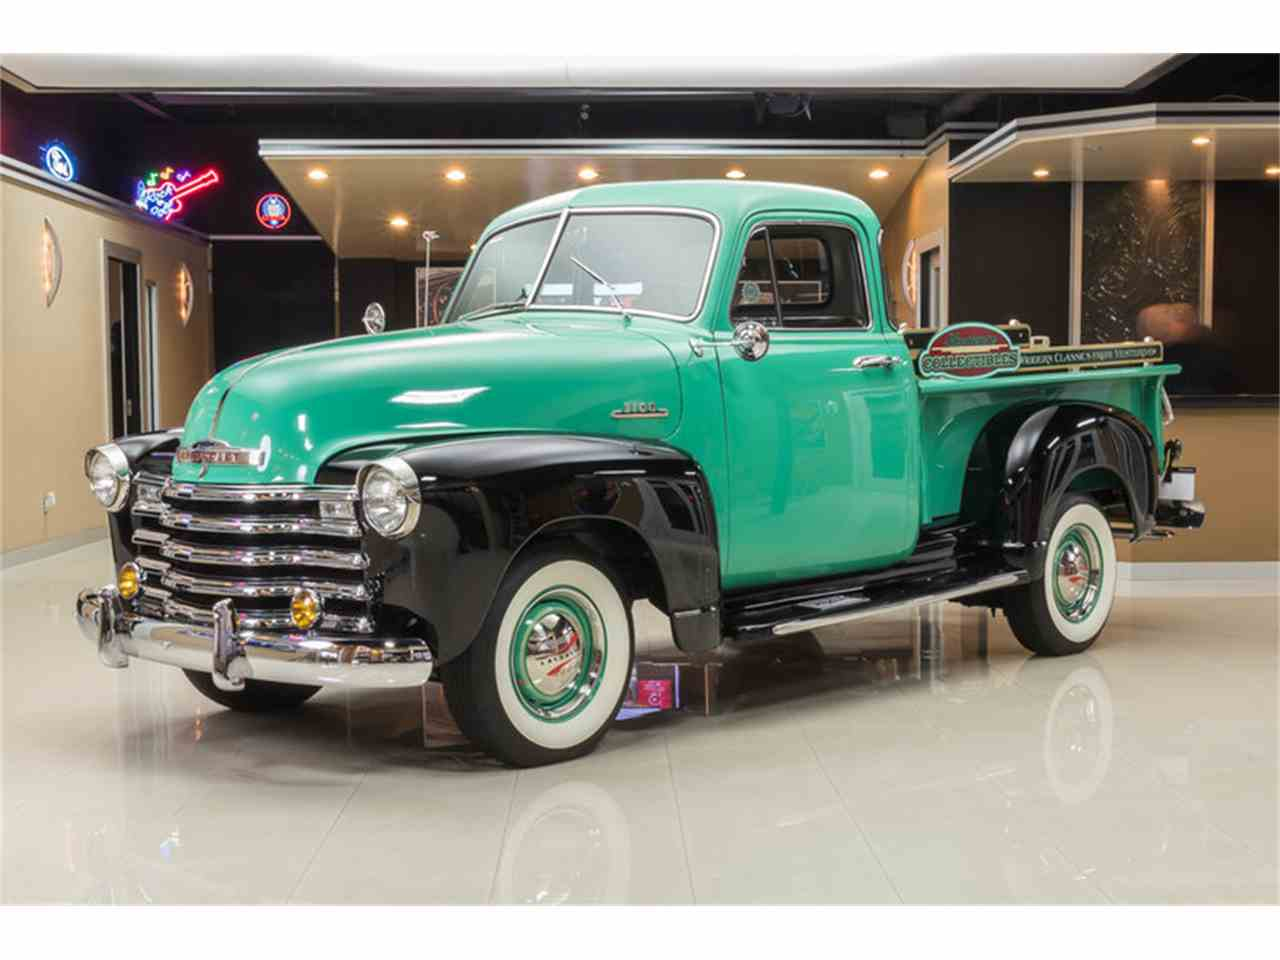 1953 chevrolet 3100 5 window pickup for sale classiccars for 1953 5 window chevy truck for sale